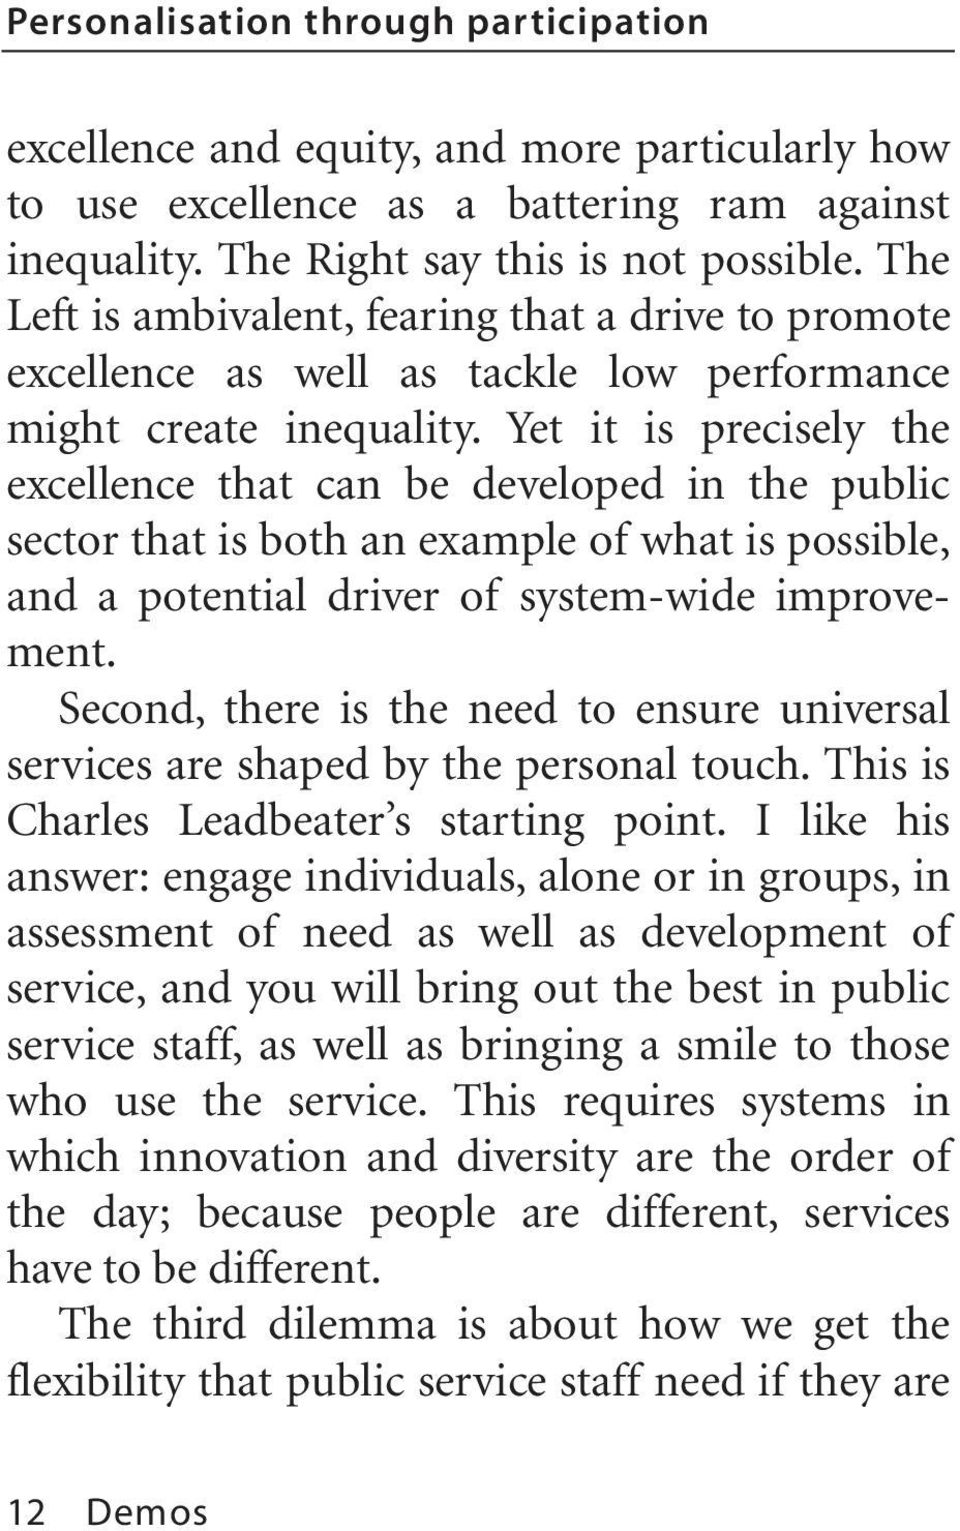 Yet it is precisely the excellence that can be developed in the public sector that is both an example of what is possible, and a potential driver of system-wide improvement.